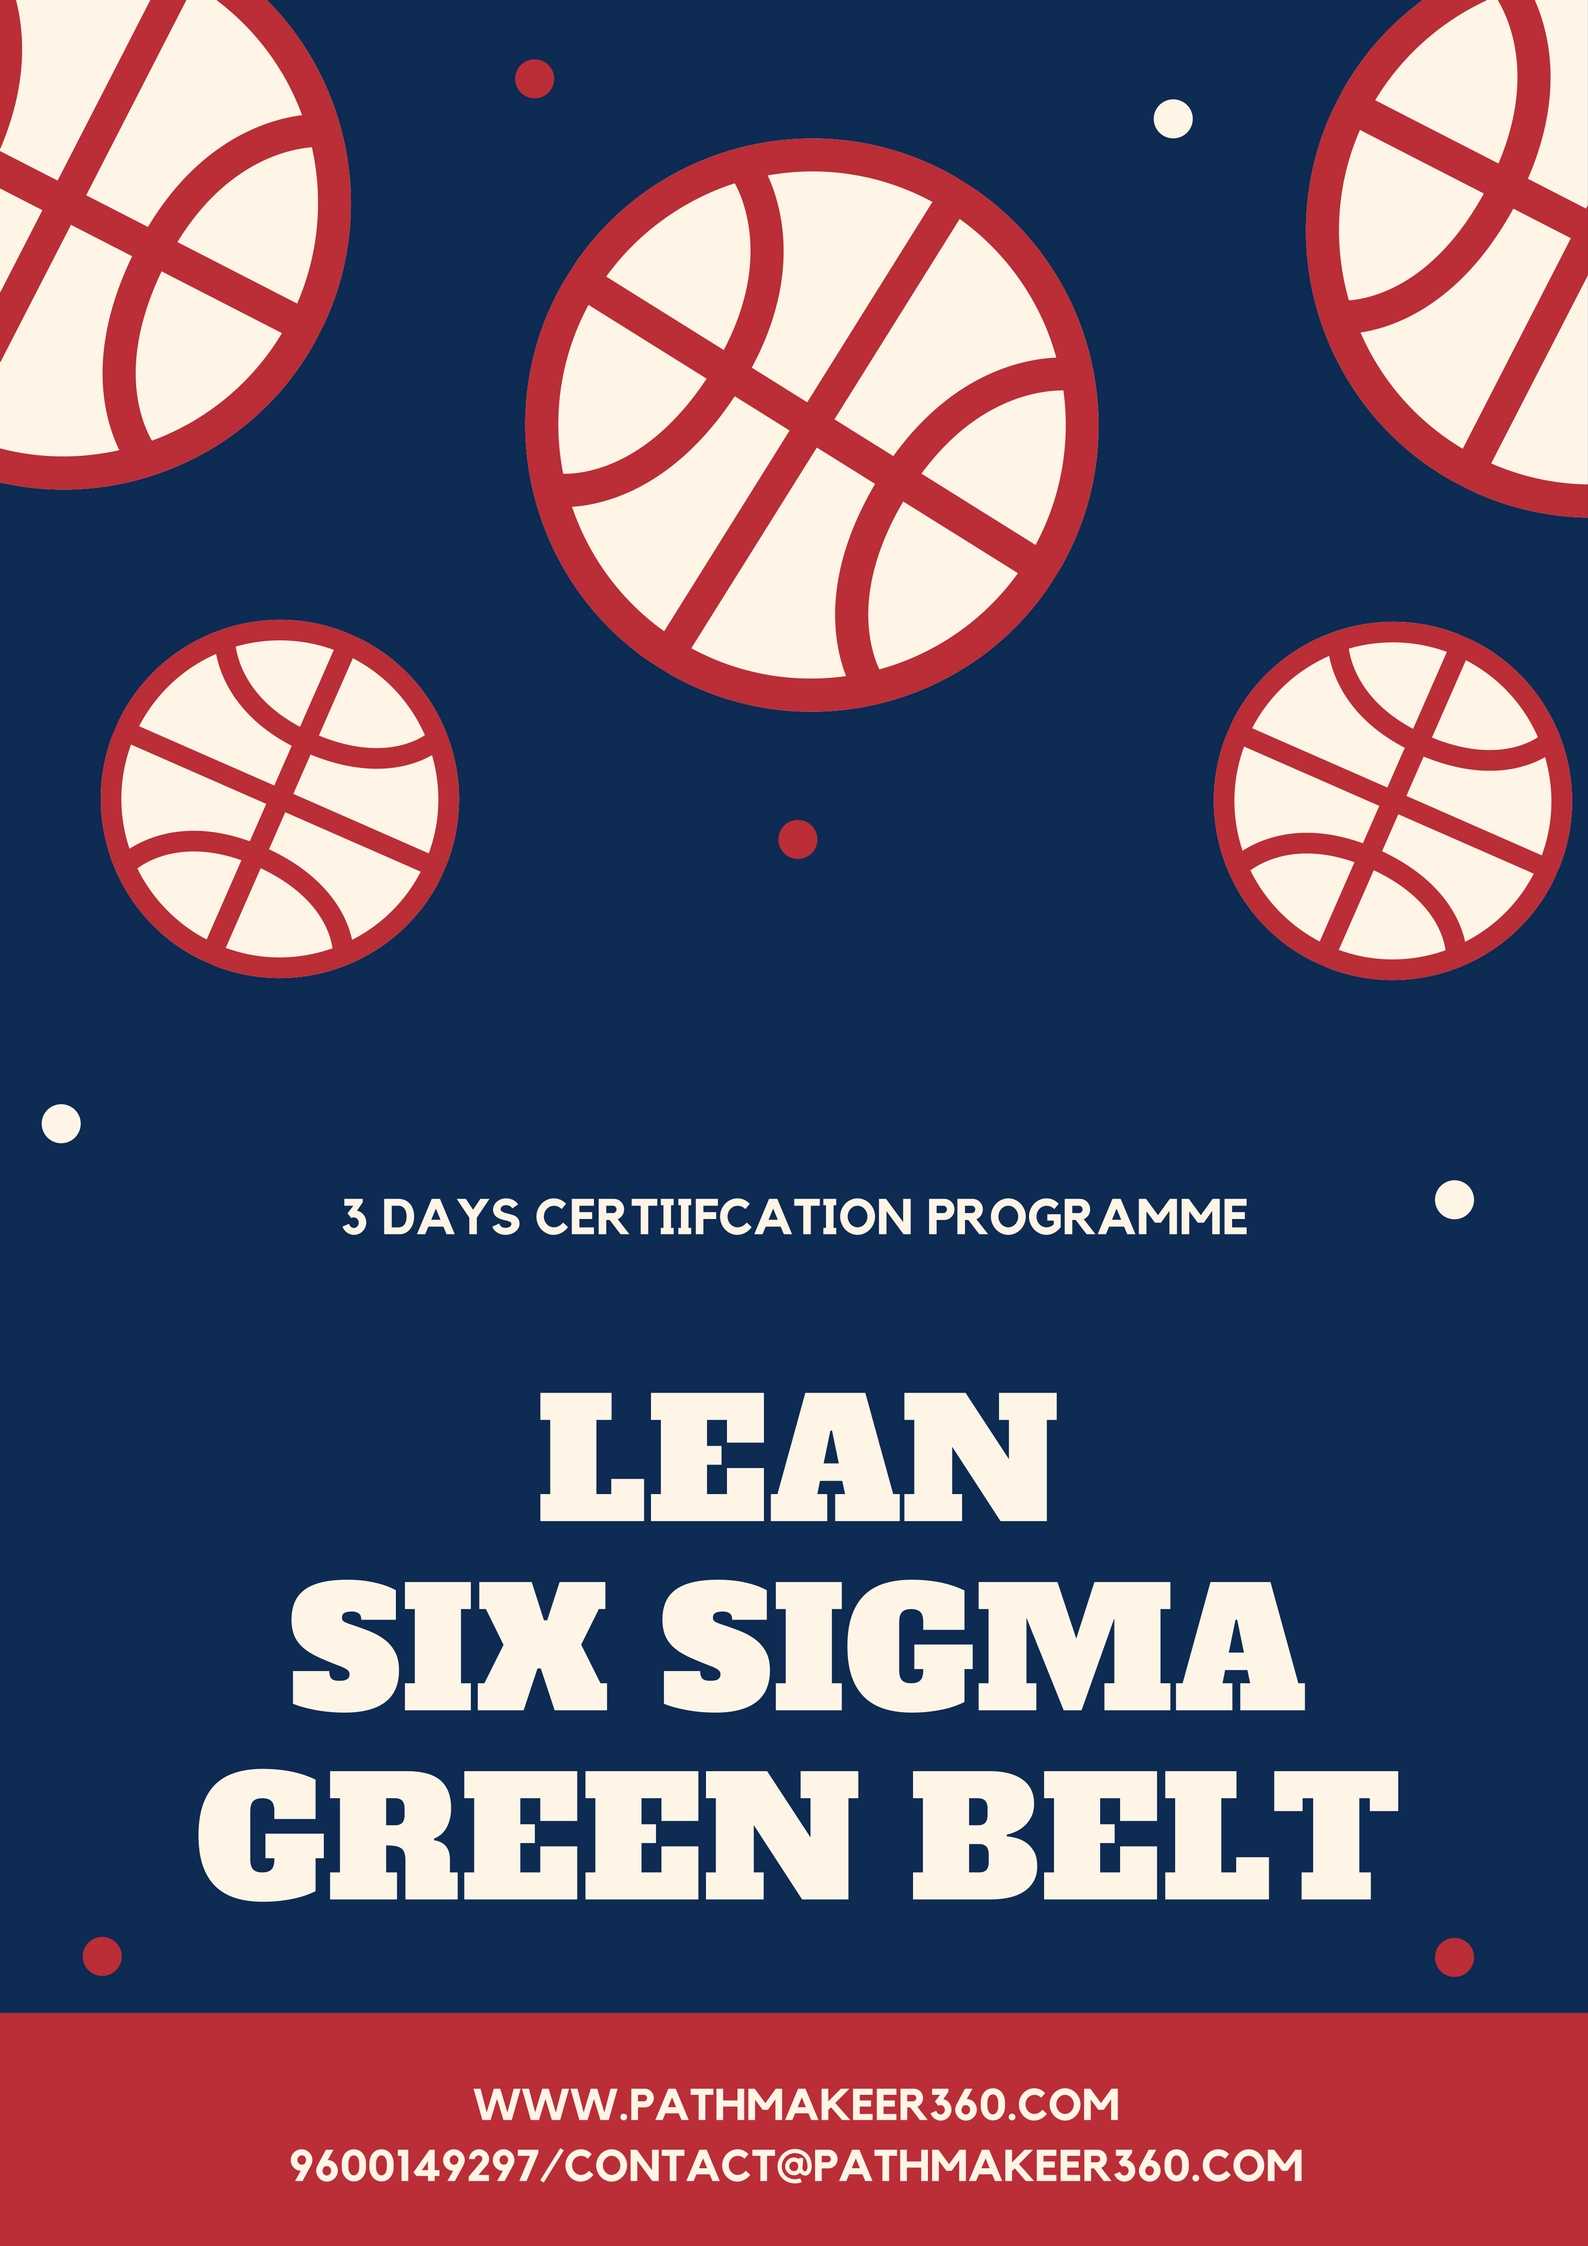 Six sigma certification in chennai six sigma training course in six sigma certification in chennai six sigma training course in chennai best institute for six sigma certification in chennai lean six sigma green 1betcityfo Images